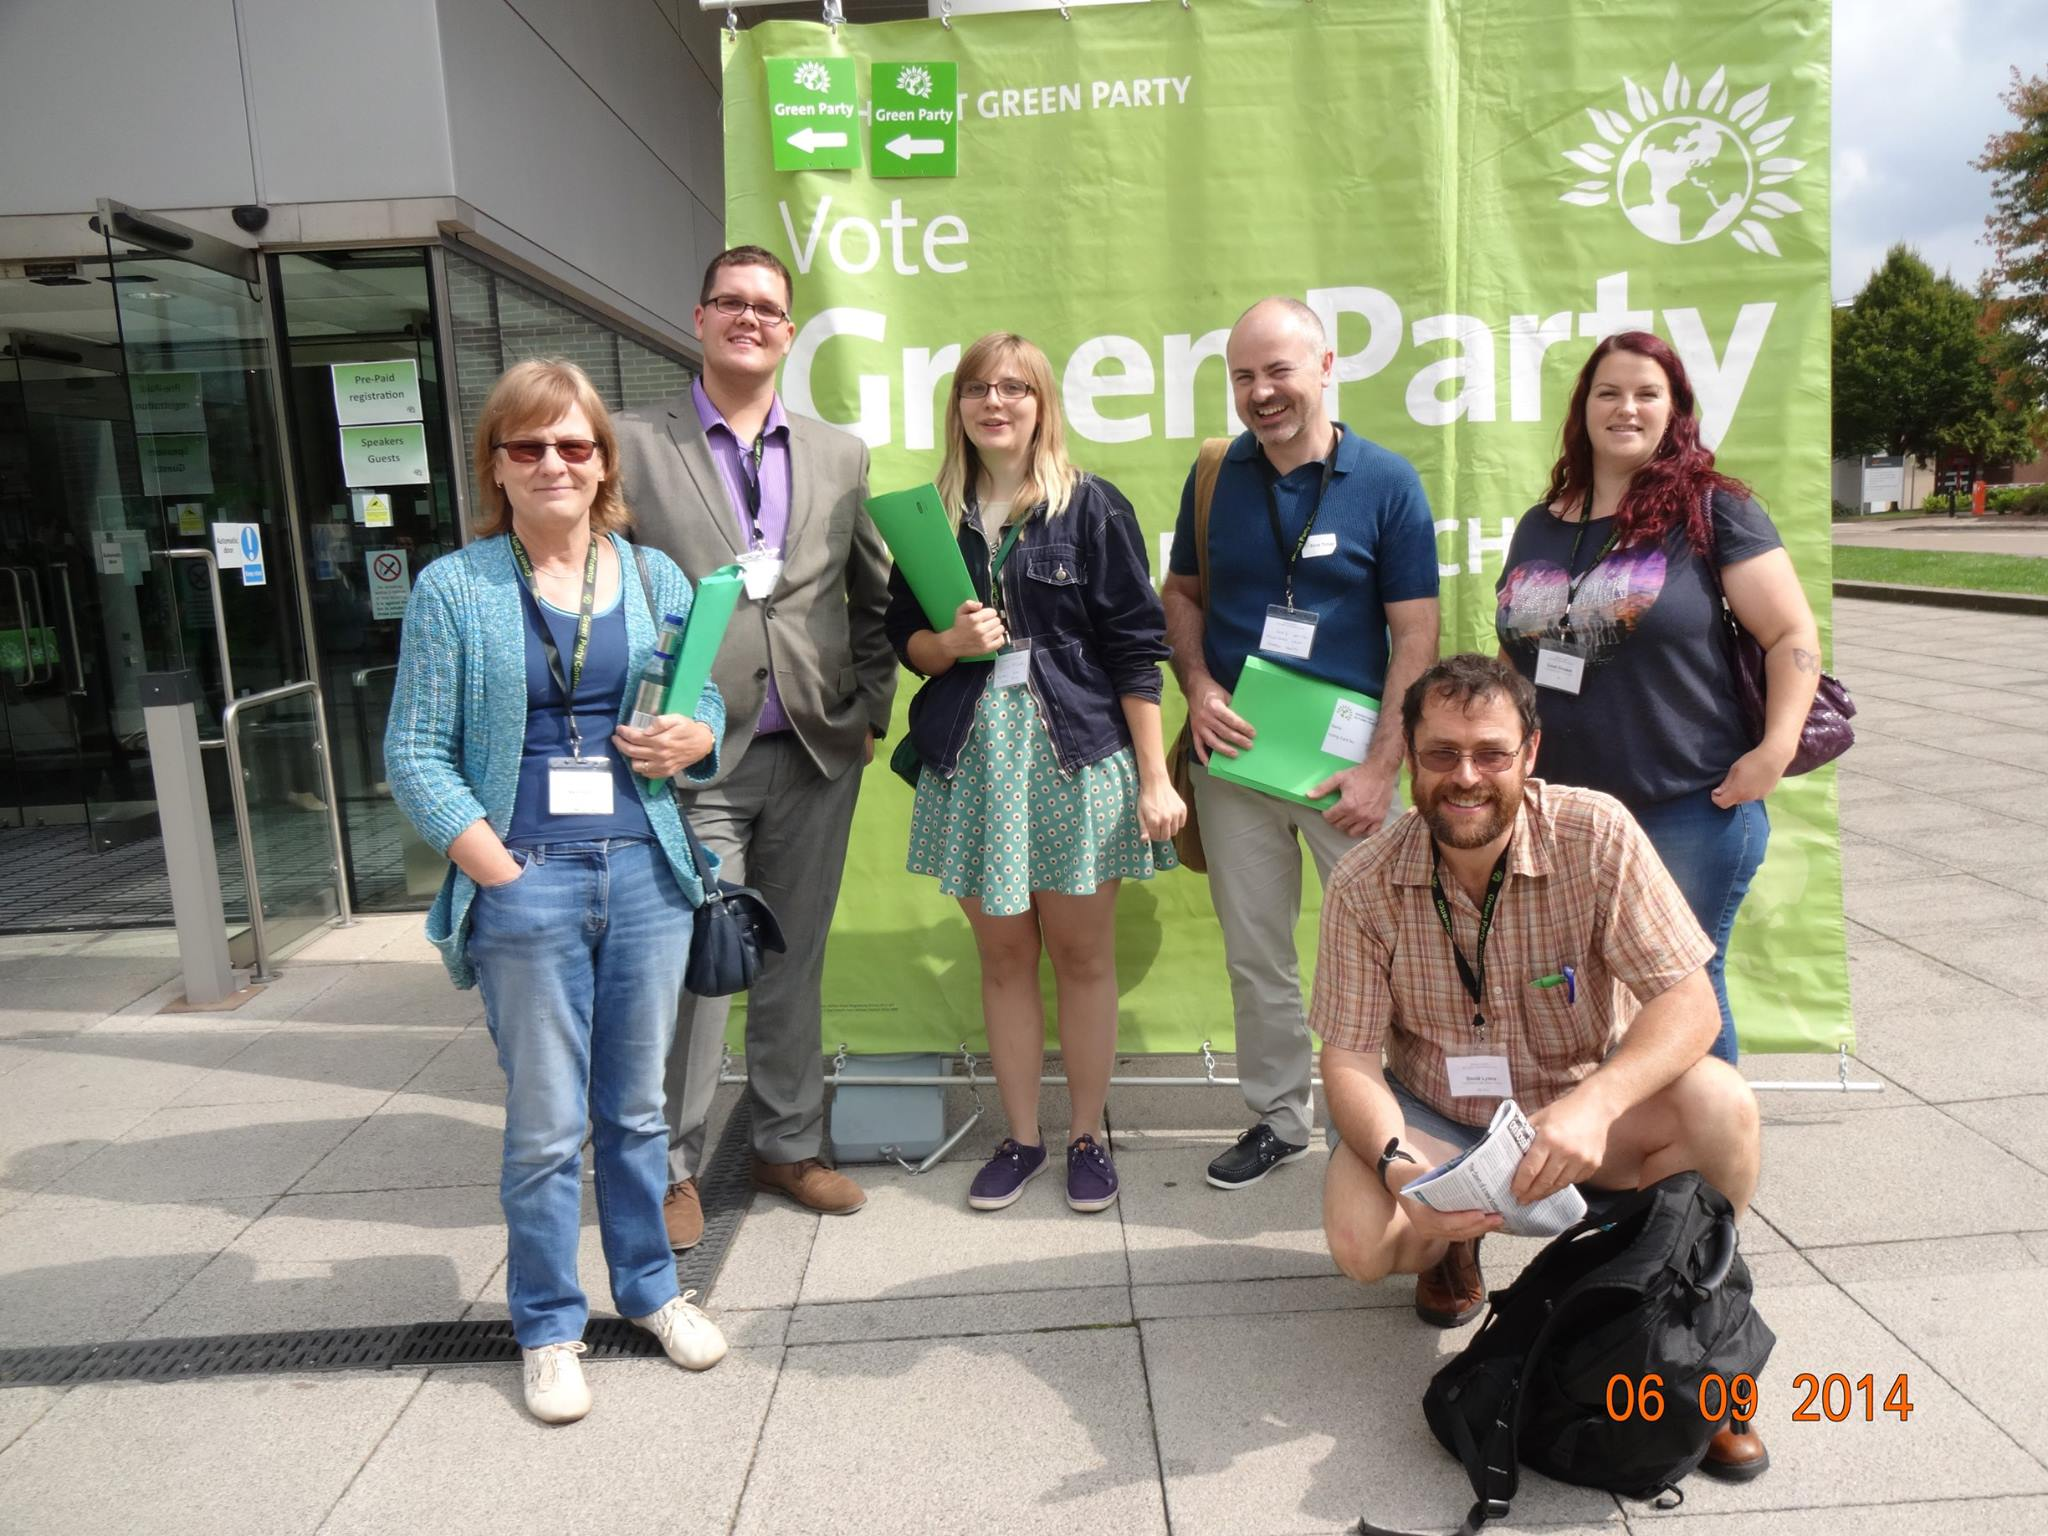 Members of Aylesbury Vale Green Party